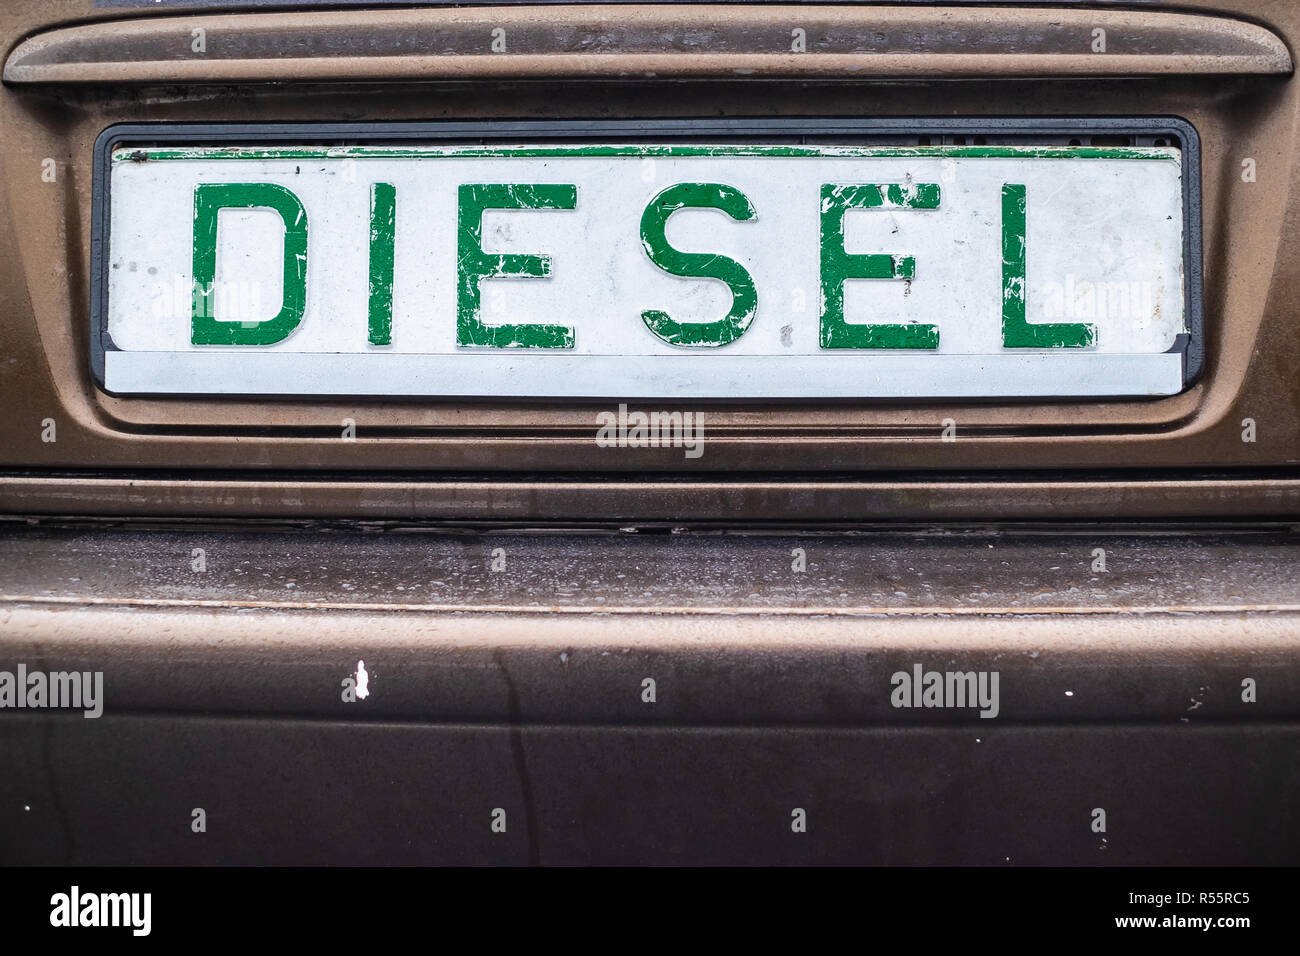 diesel emission fake registration plate at sports event in Poland - Stock Image